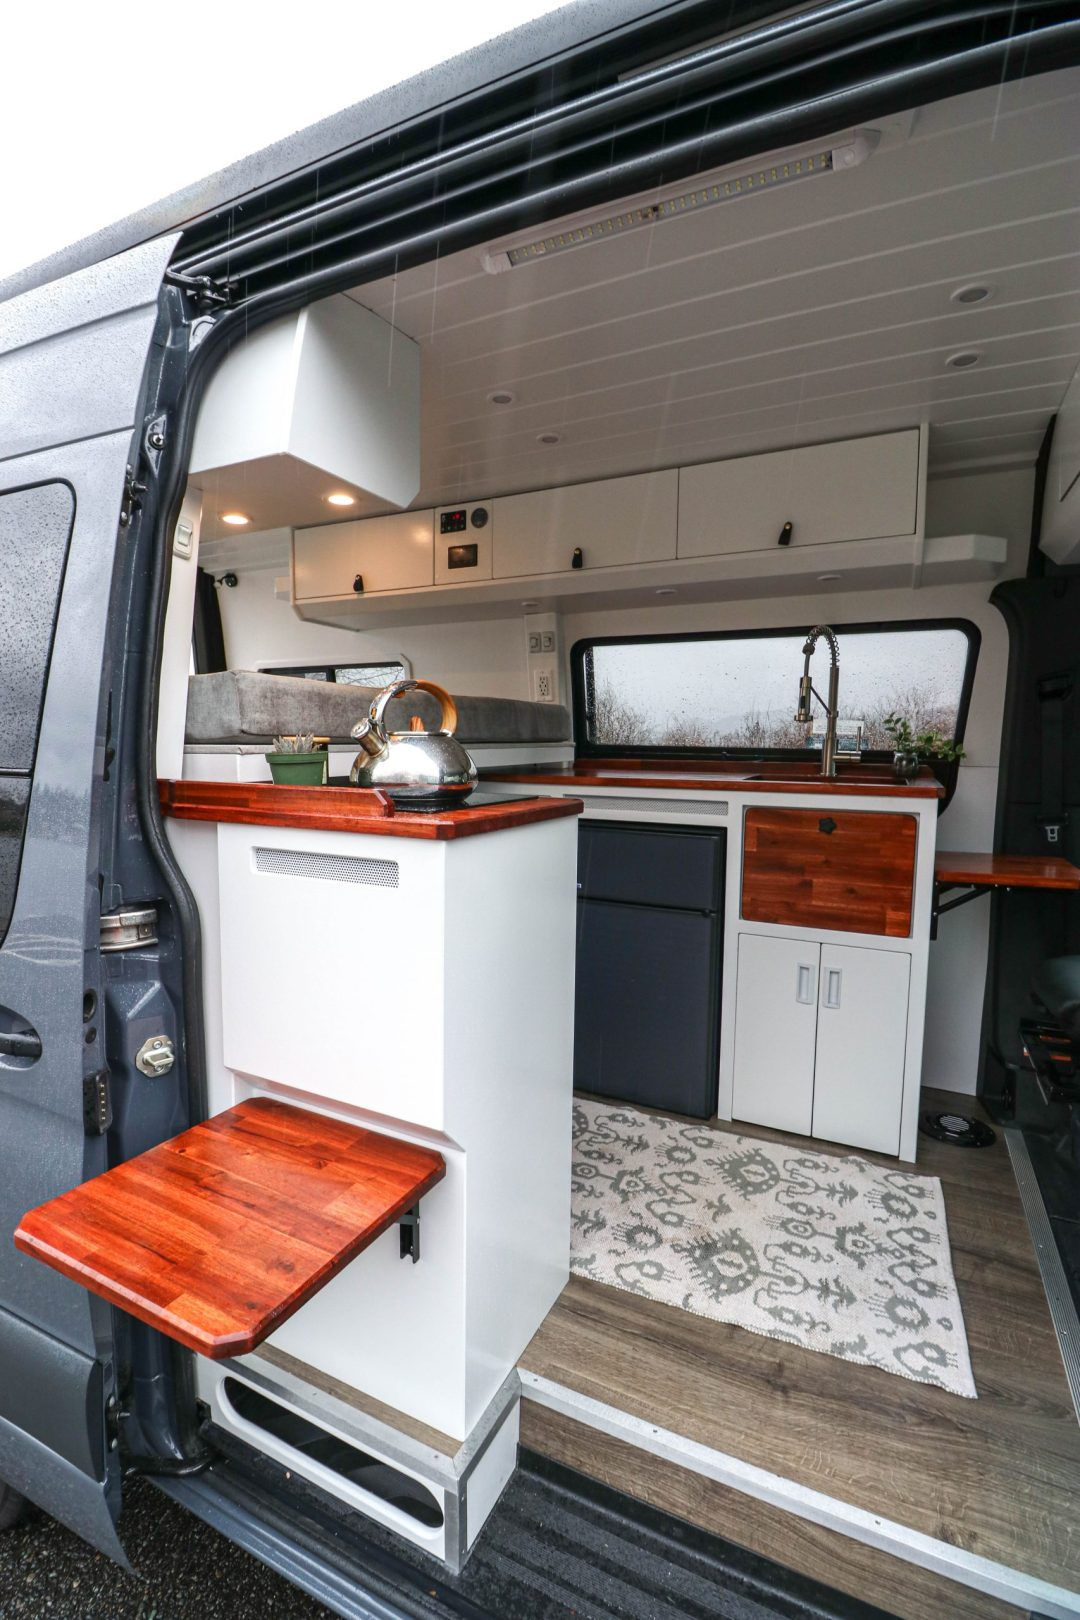 Driftin And Dreamin Freedom Vans Ford Transit Camper Ford Transit Camper Conversion Transit Camper Conversion